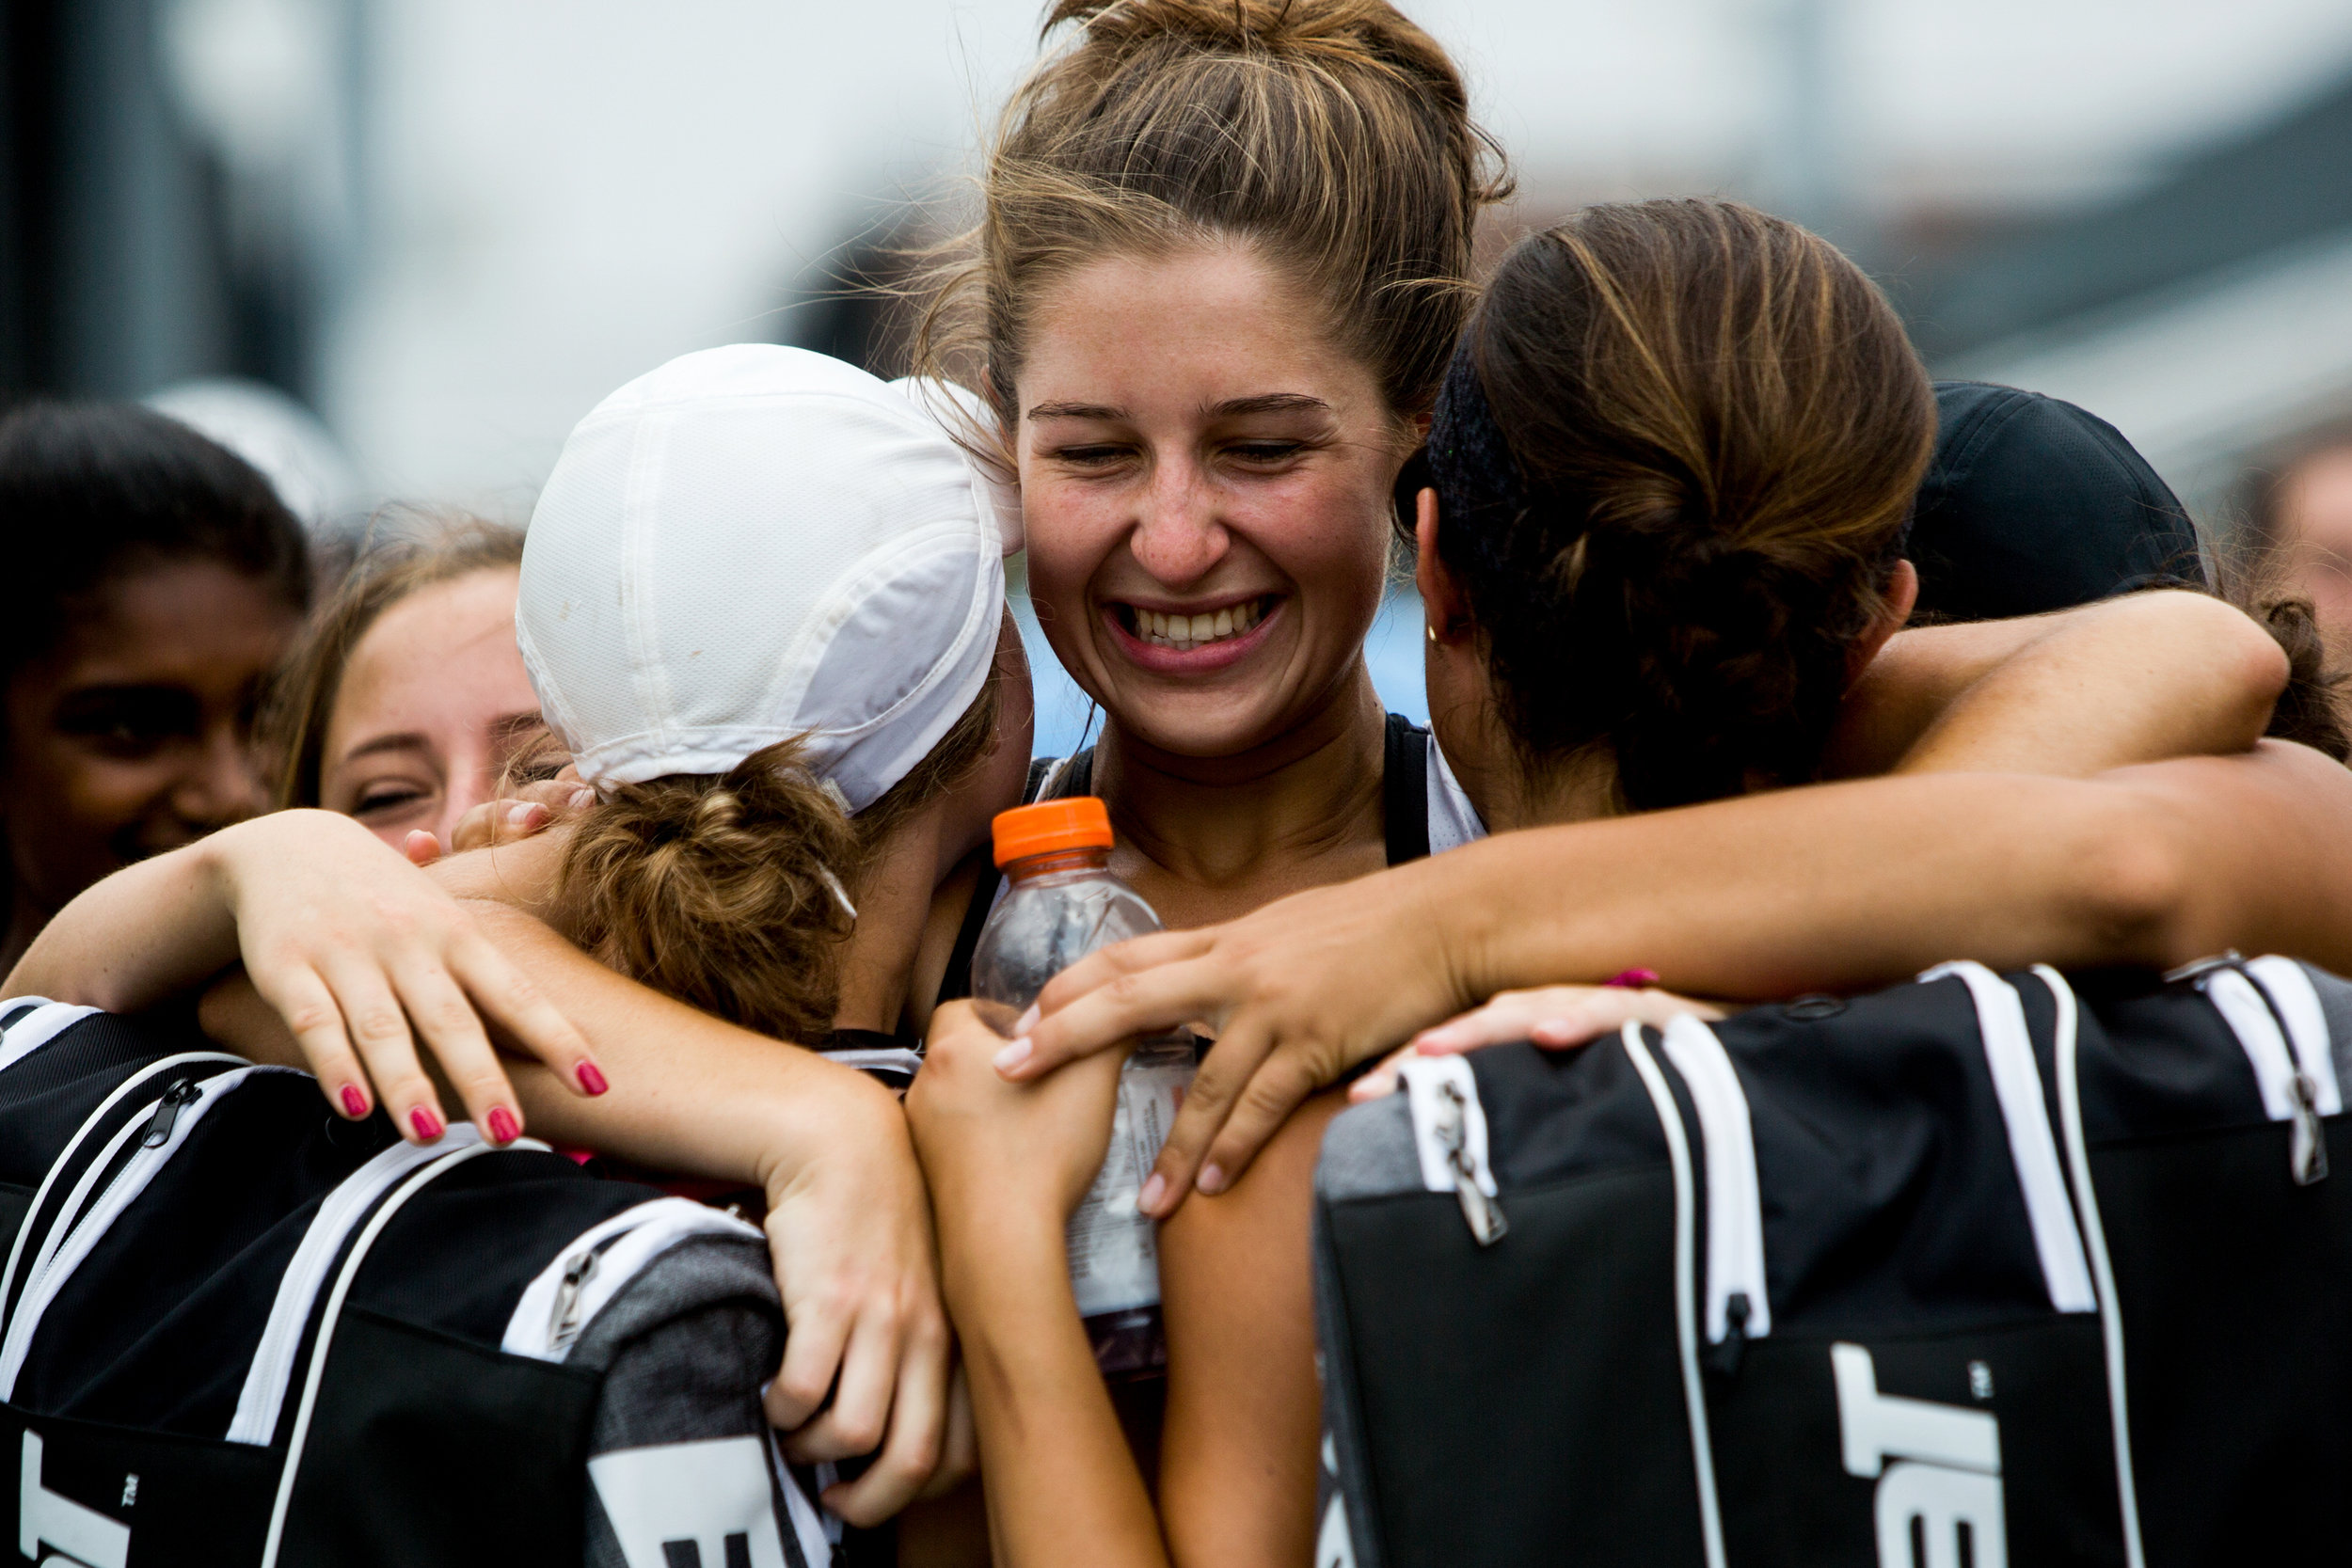 Jasper's Mallory Ahlbrand hugged teammates Jillian Seger, right, and Kathleen Messmer after they won their No. 2 doubles match during the semistate tennis match on Saturday in Jasper. The Wildcats dumped Evansville Memorial 4-1 for a semistate title - it's third straight state finals berth for the Wildcats.